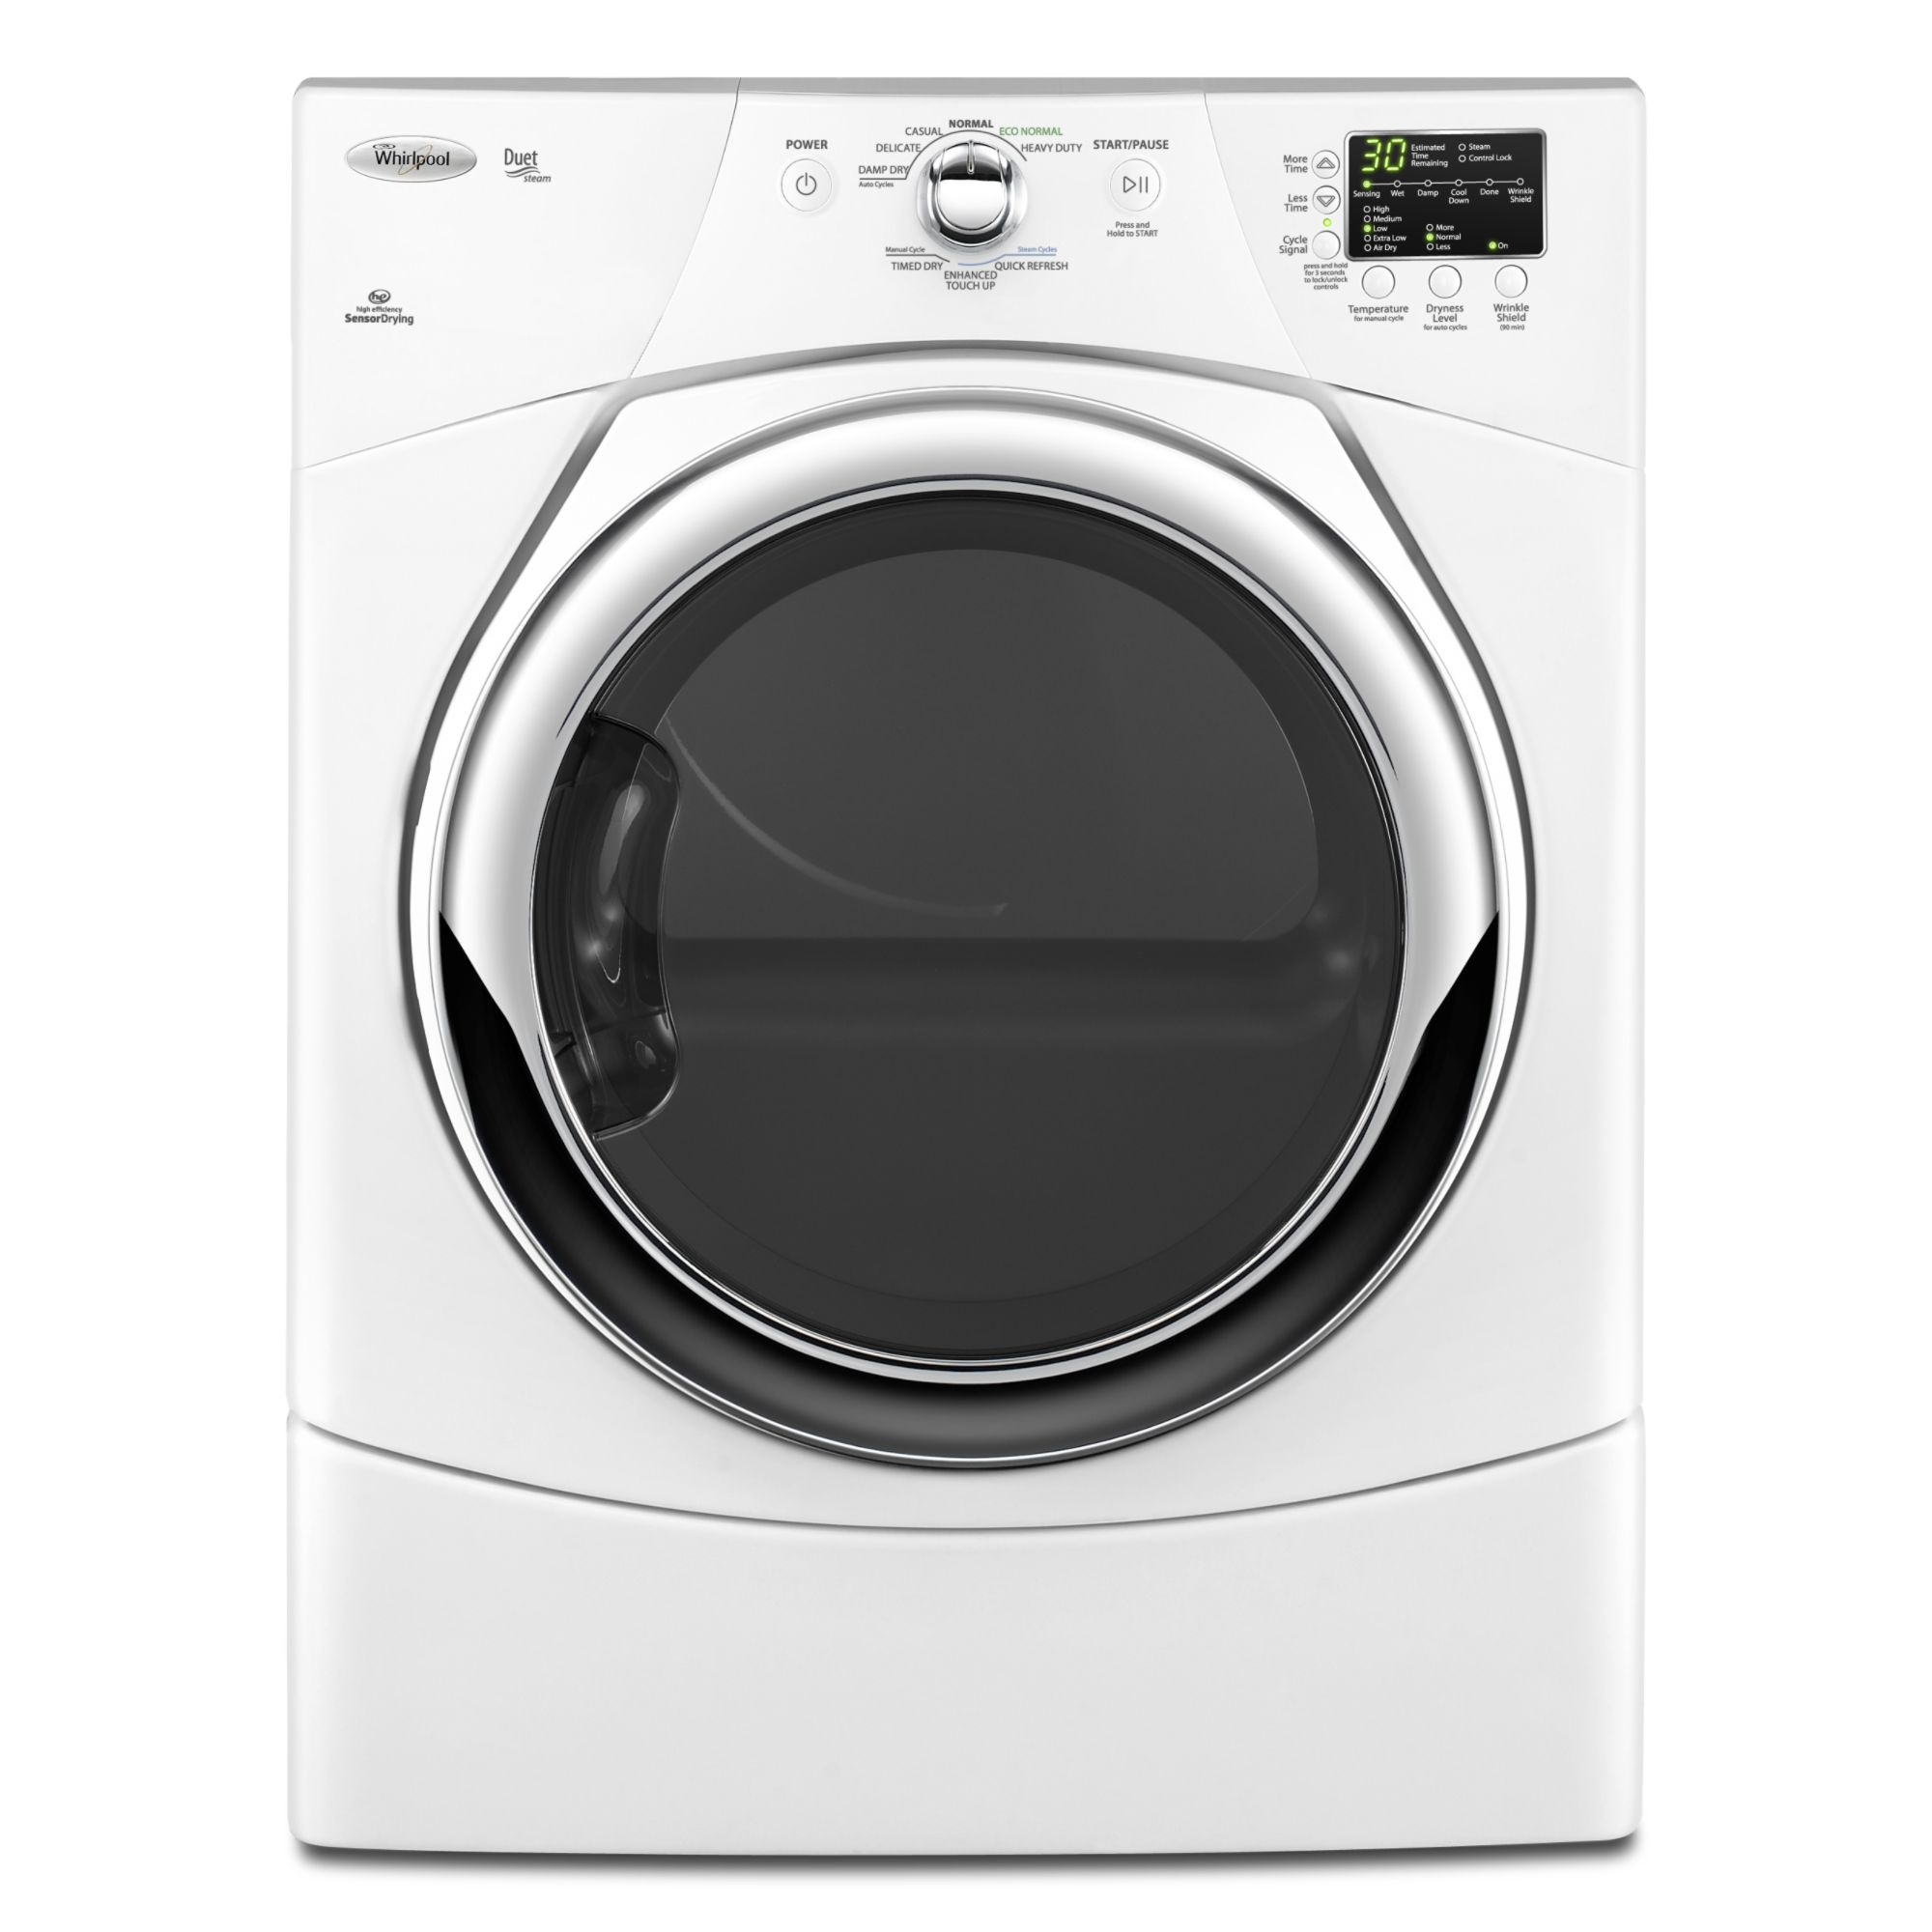 Whirlpool 6 7 Cu Ft Steam Gas Dryer White Shop Your - Whirlpool Steam Dryer